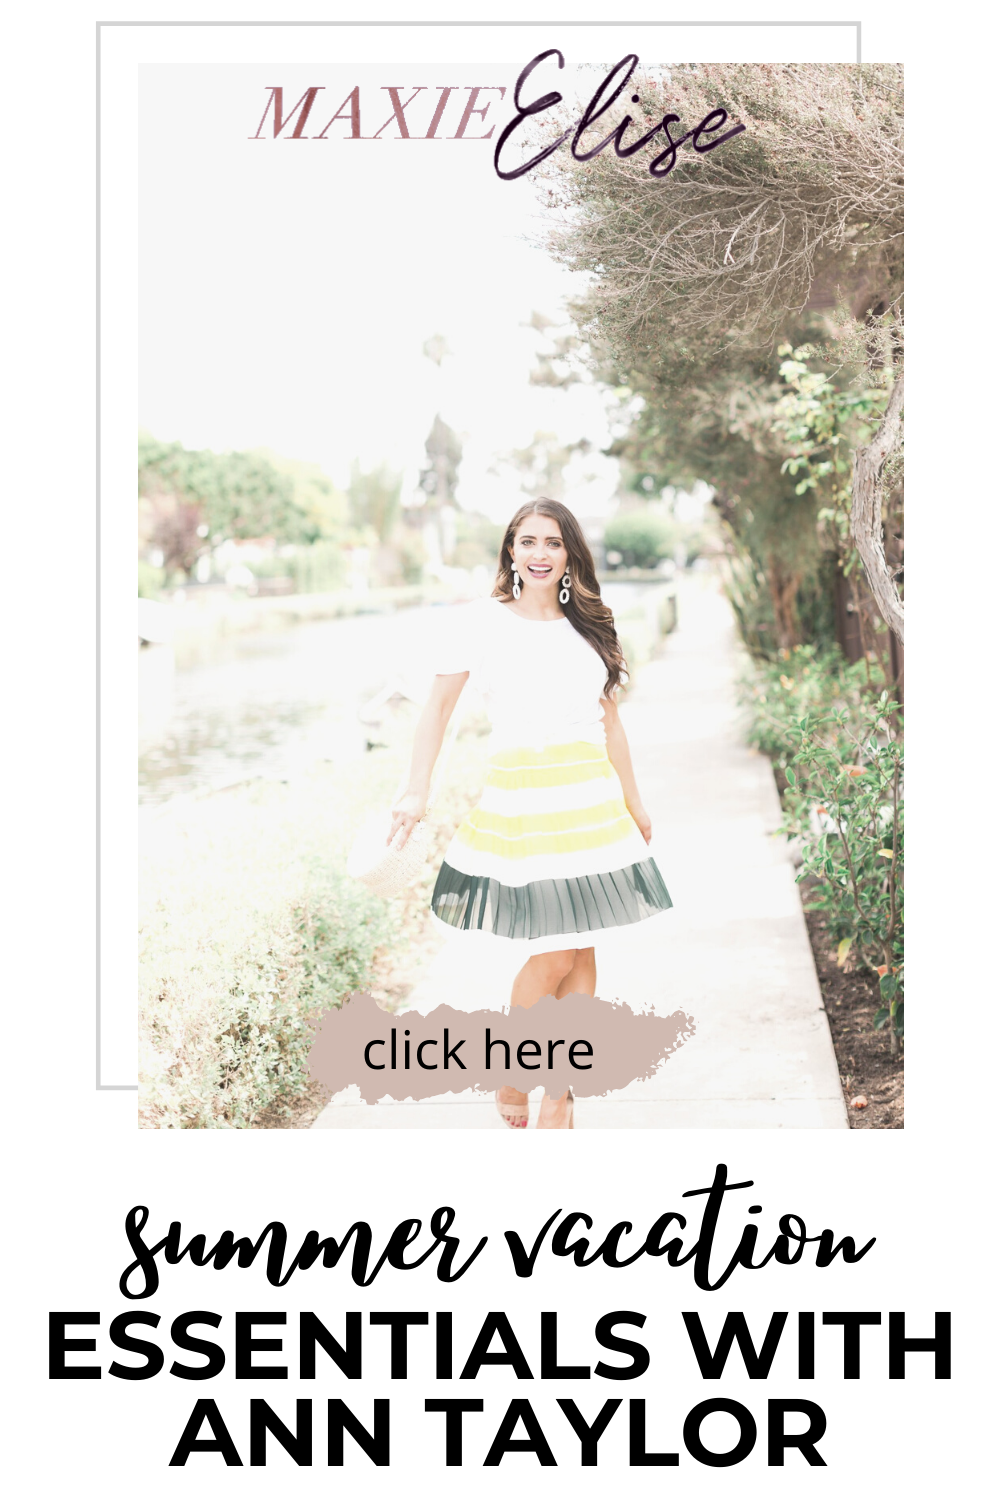 SUMMER VACATION ESSENTIALS WITH ANN TAYLOR